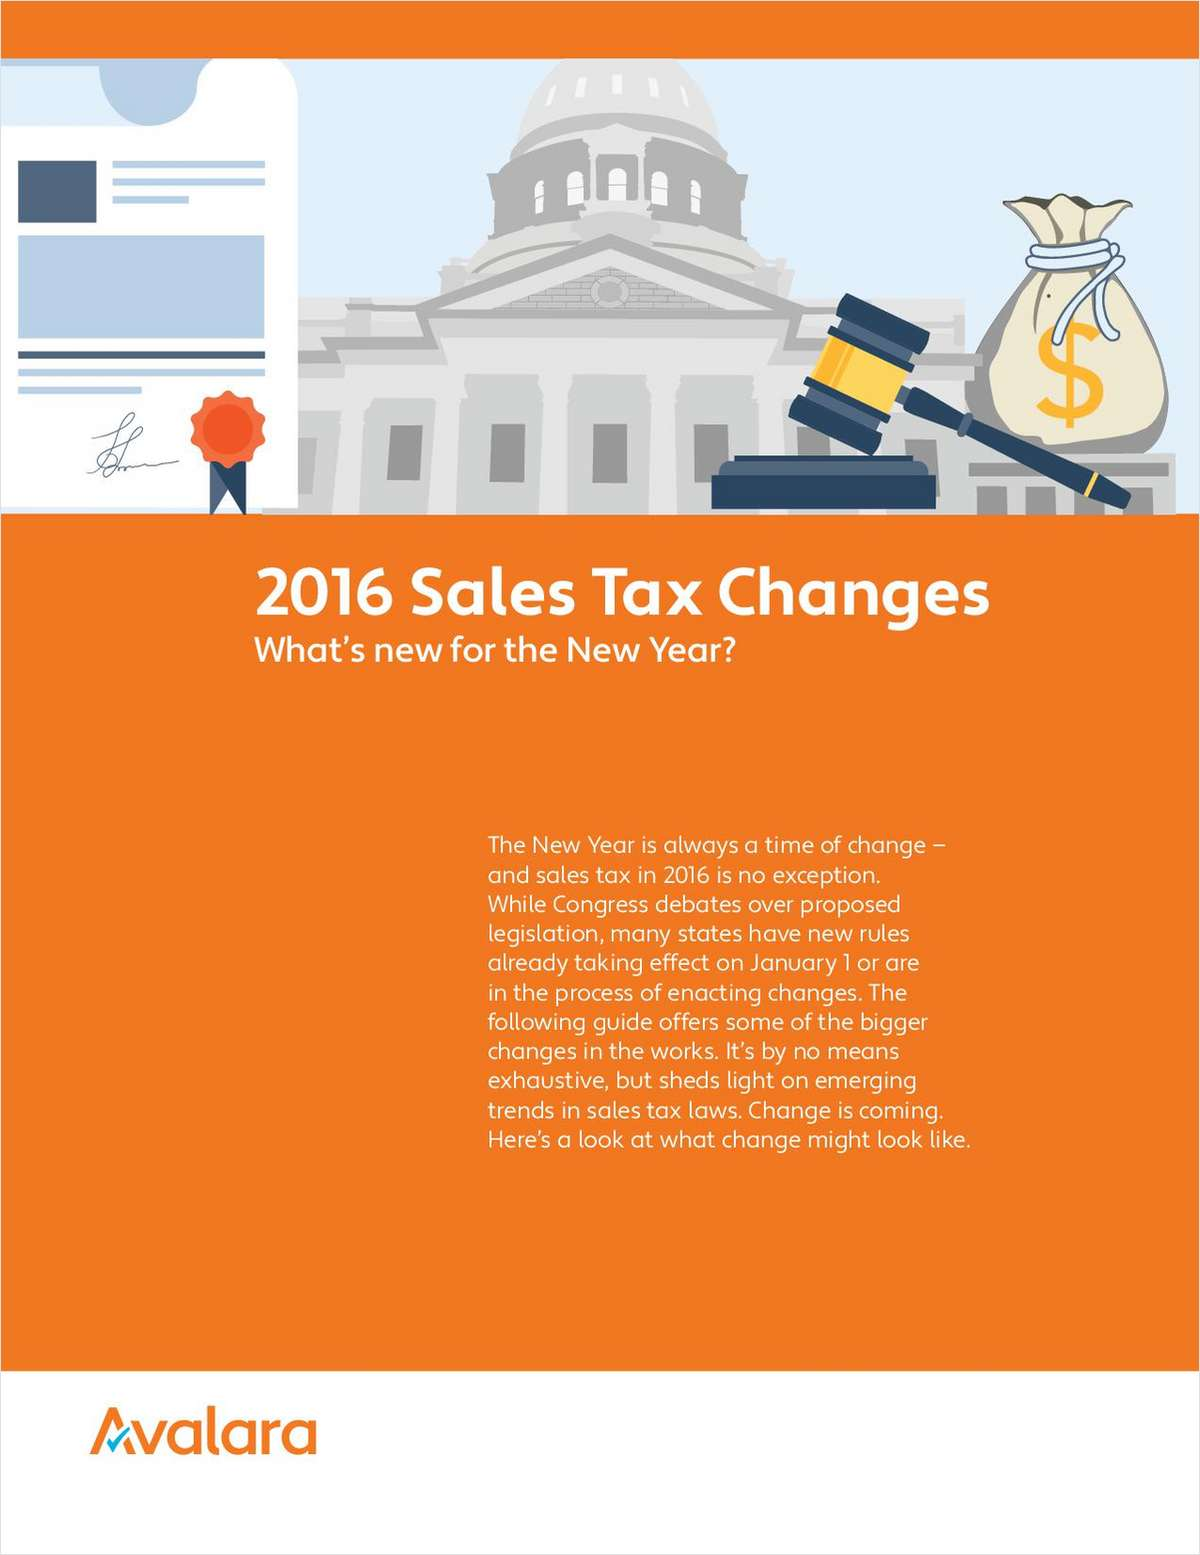 2016 Sales Tax Changes: What's New for the New Year?